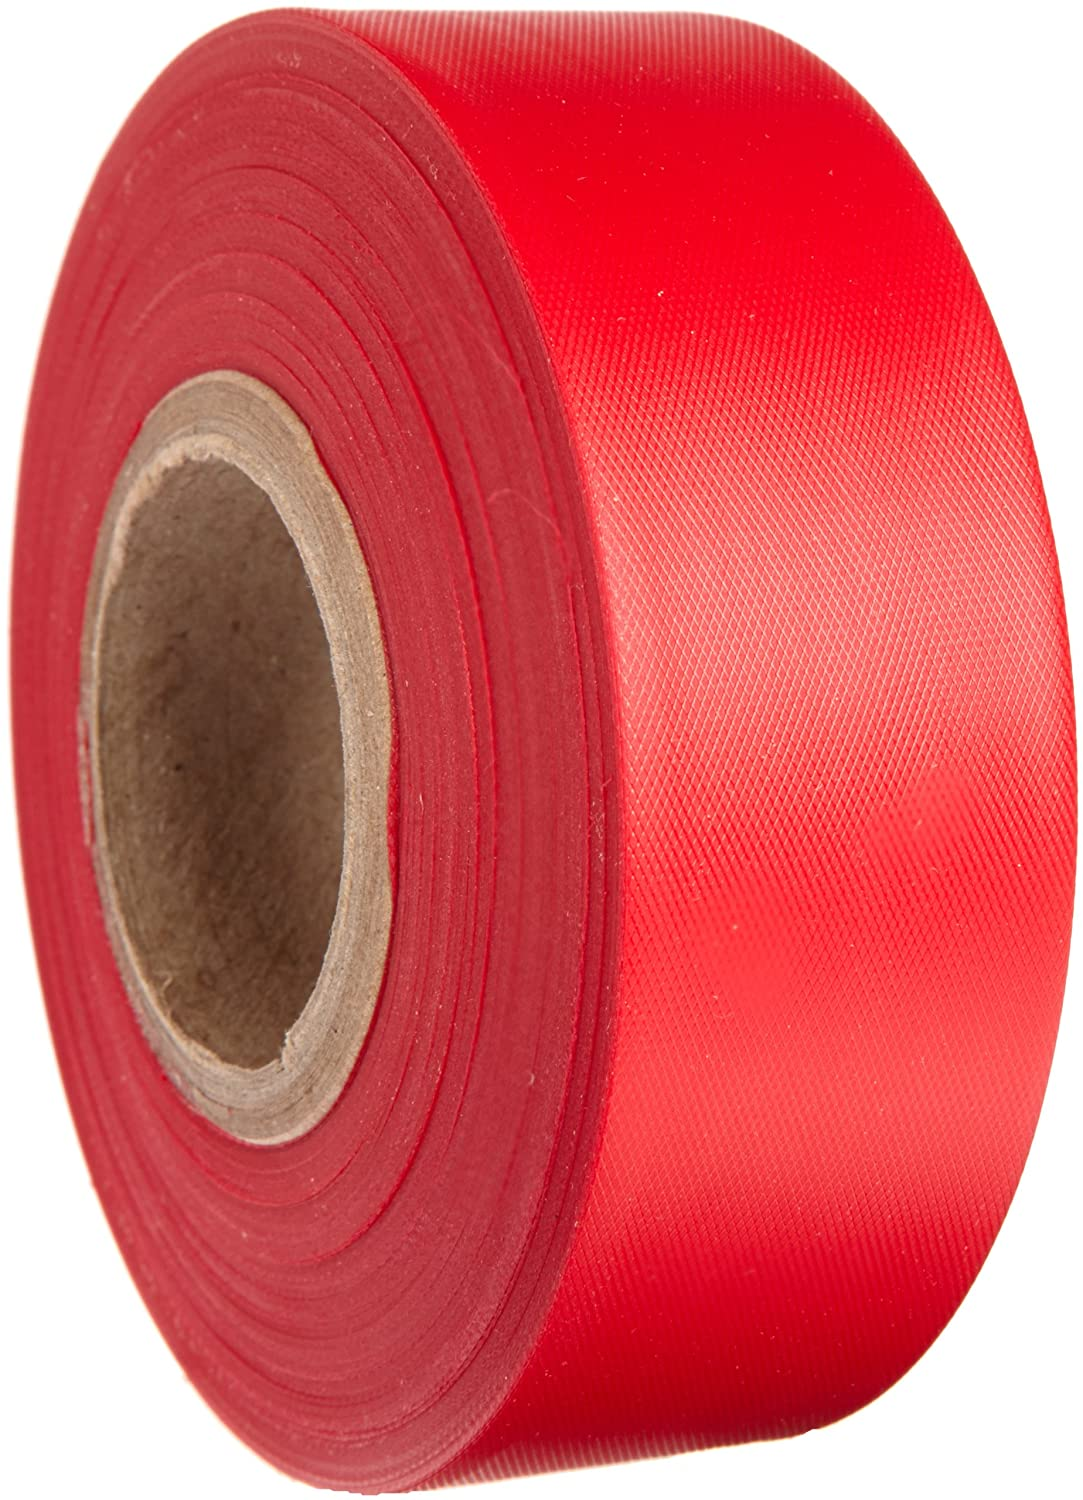 """Brady Red Flagging Tape for Boundaries and Hazardous Areas - Non-Adhesive Tape, 1.188"""" Width, 300' Length (Pack of 1) - 58346"""